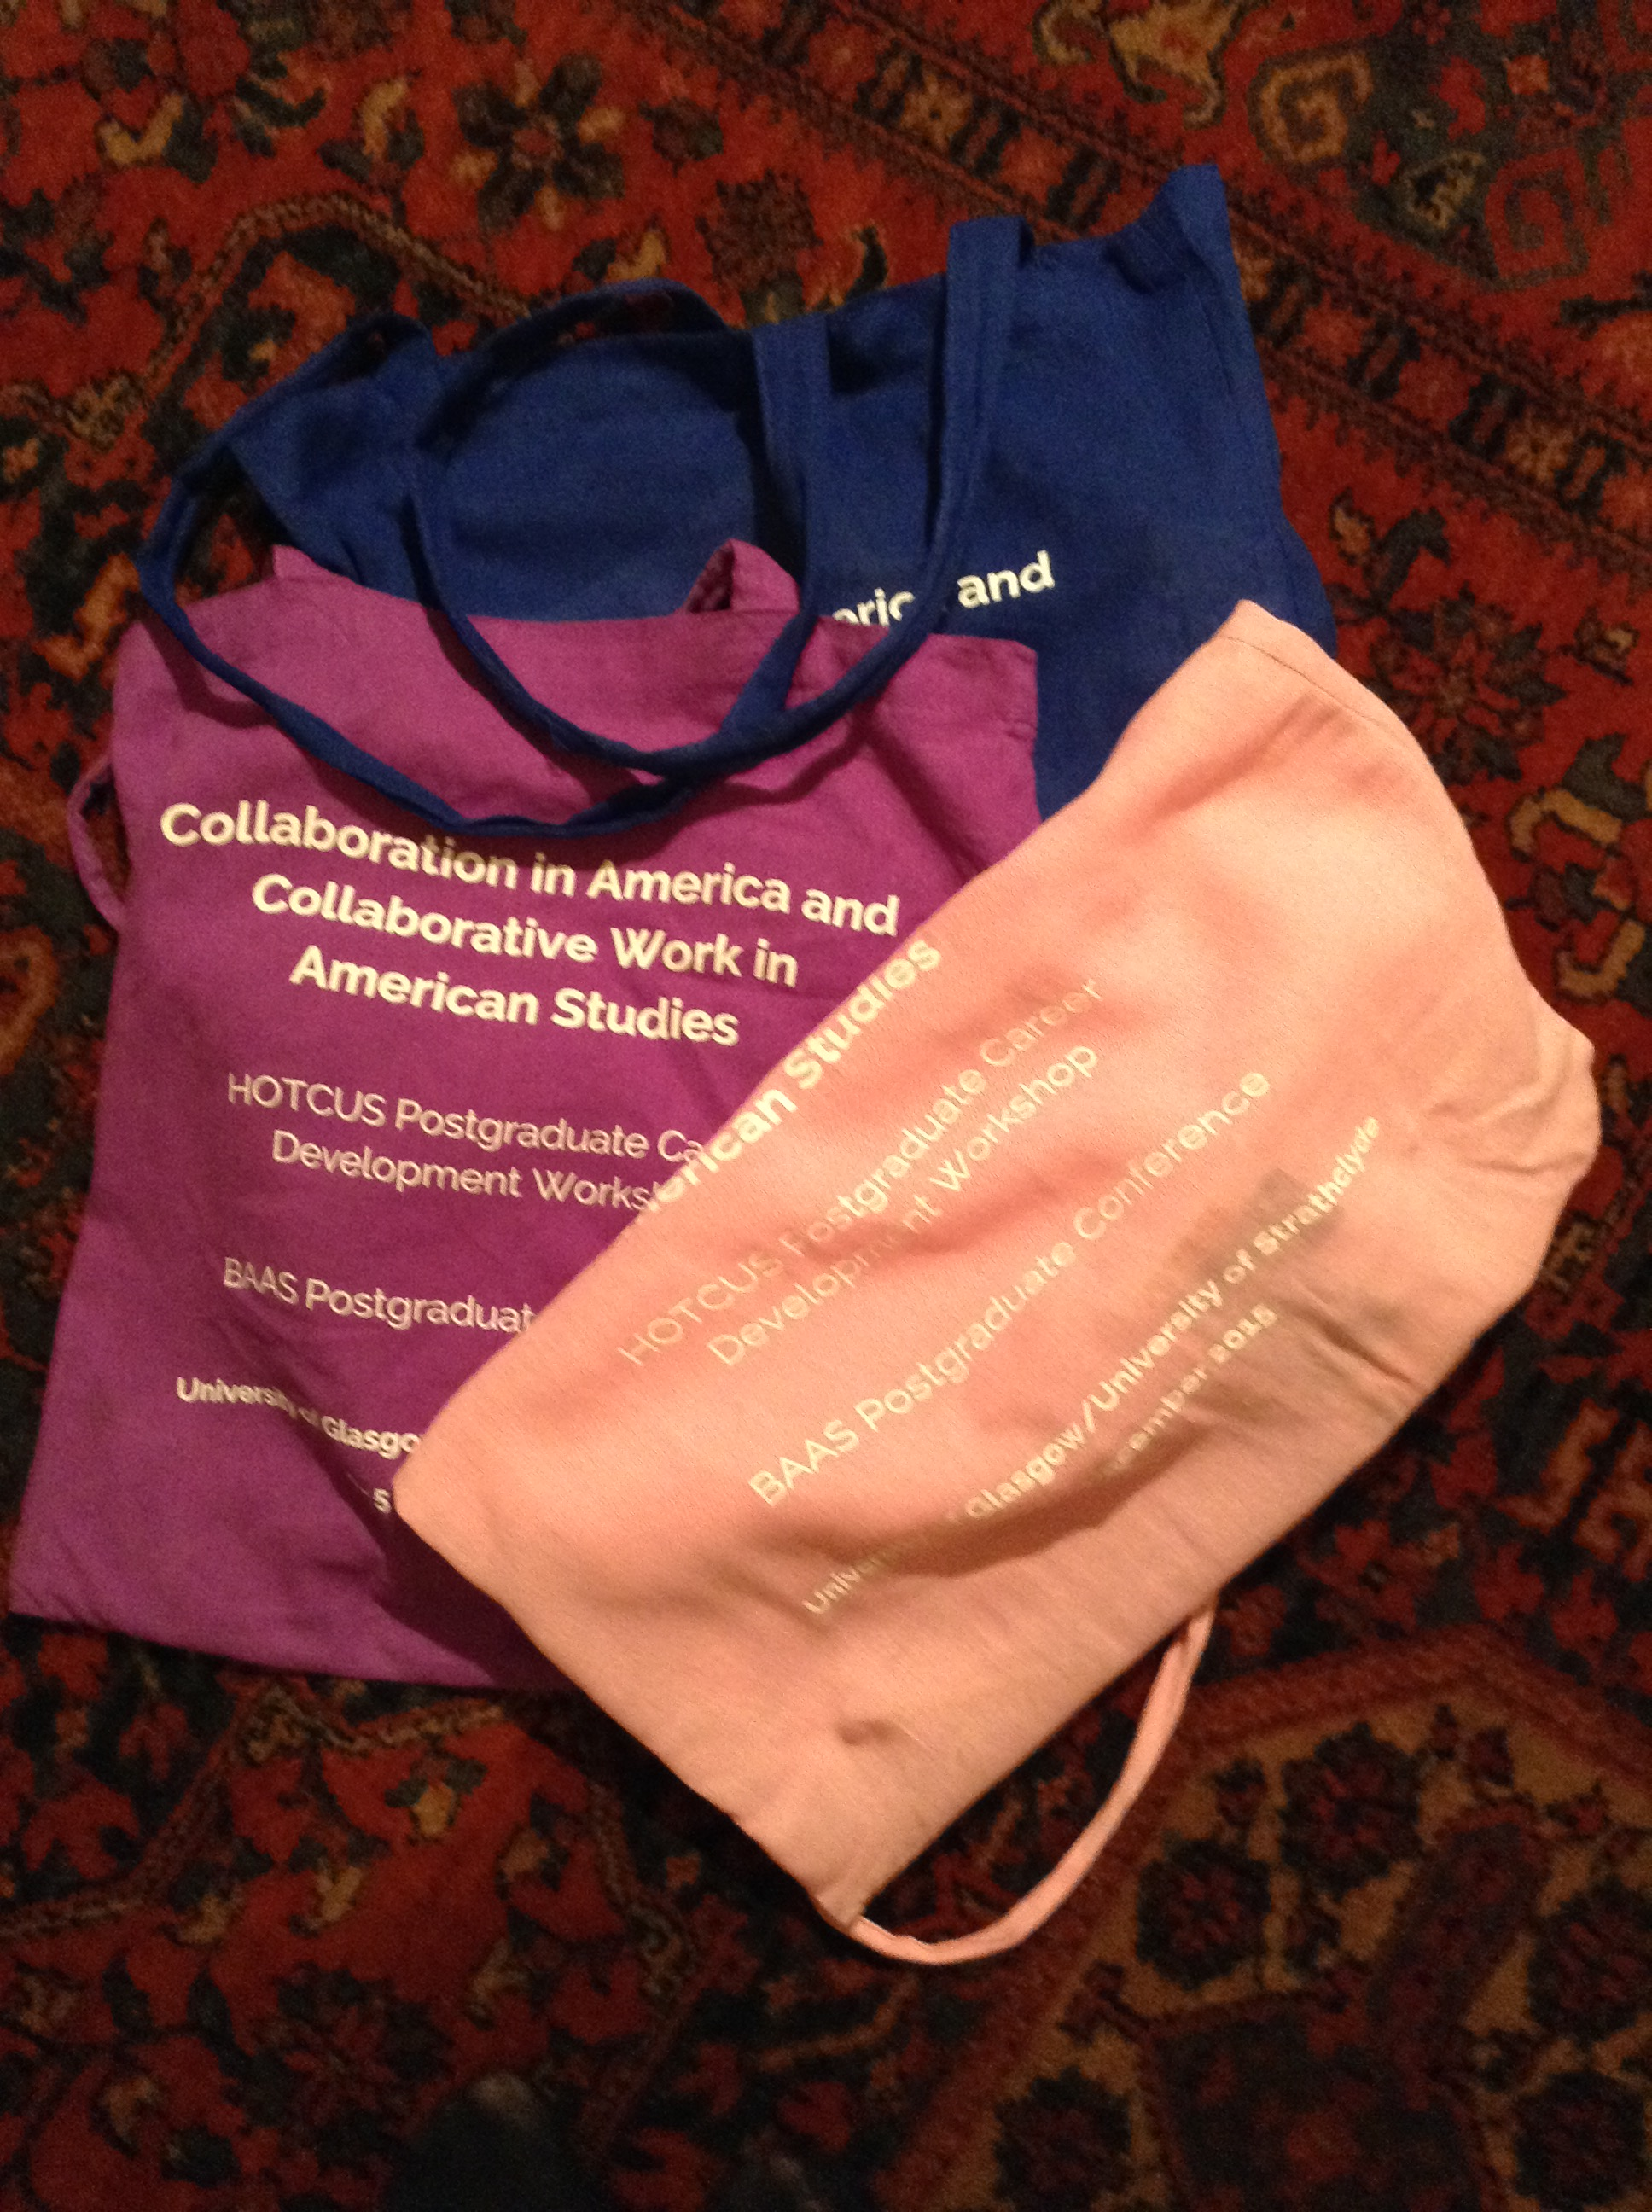 Three conference tote bags in navy, purple and peach. Conference details are printed on the badges.